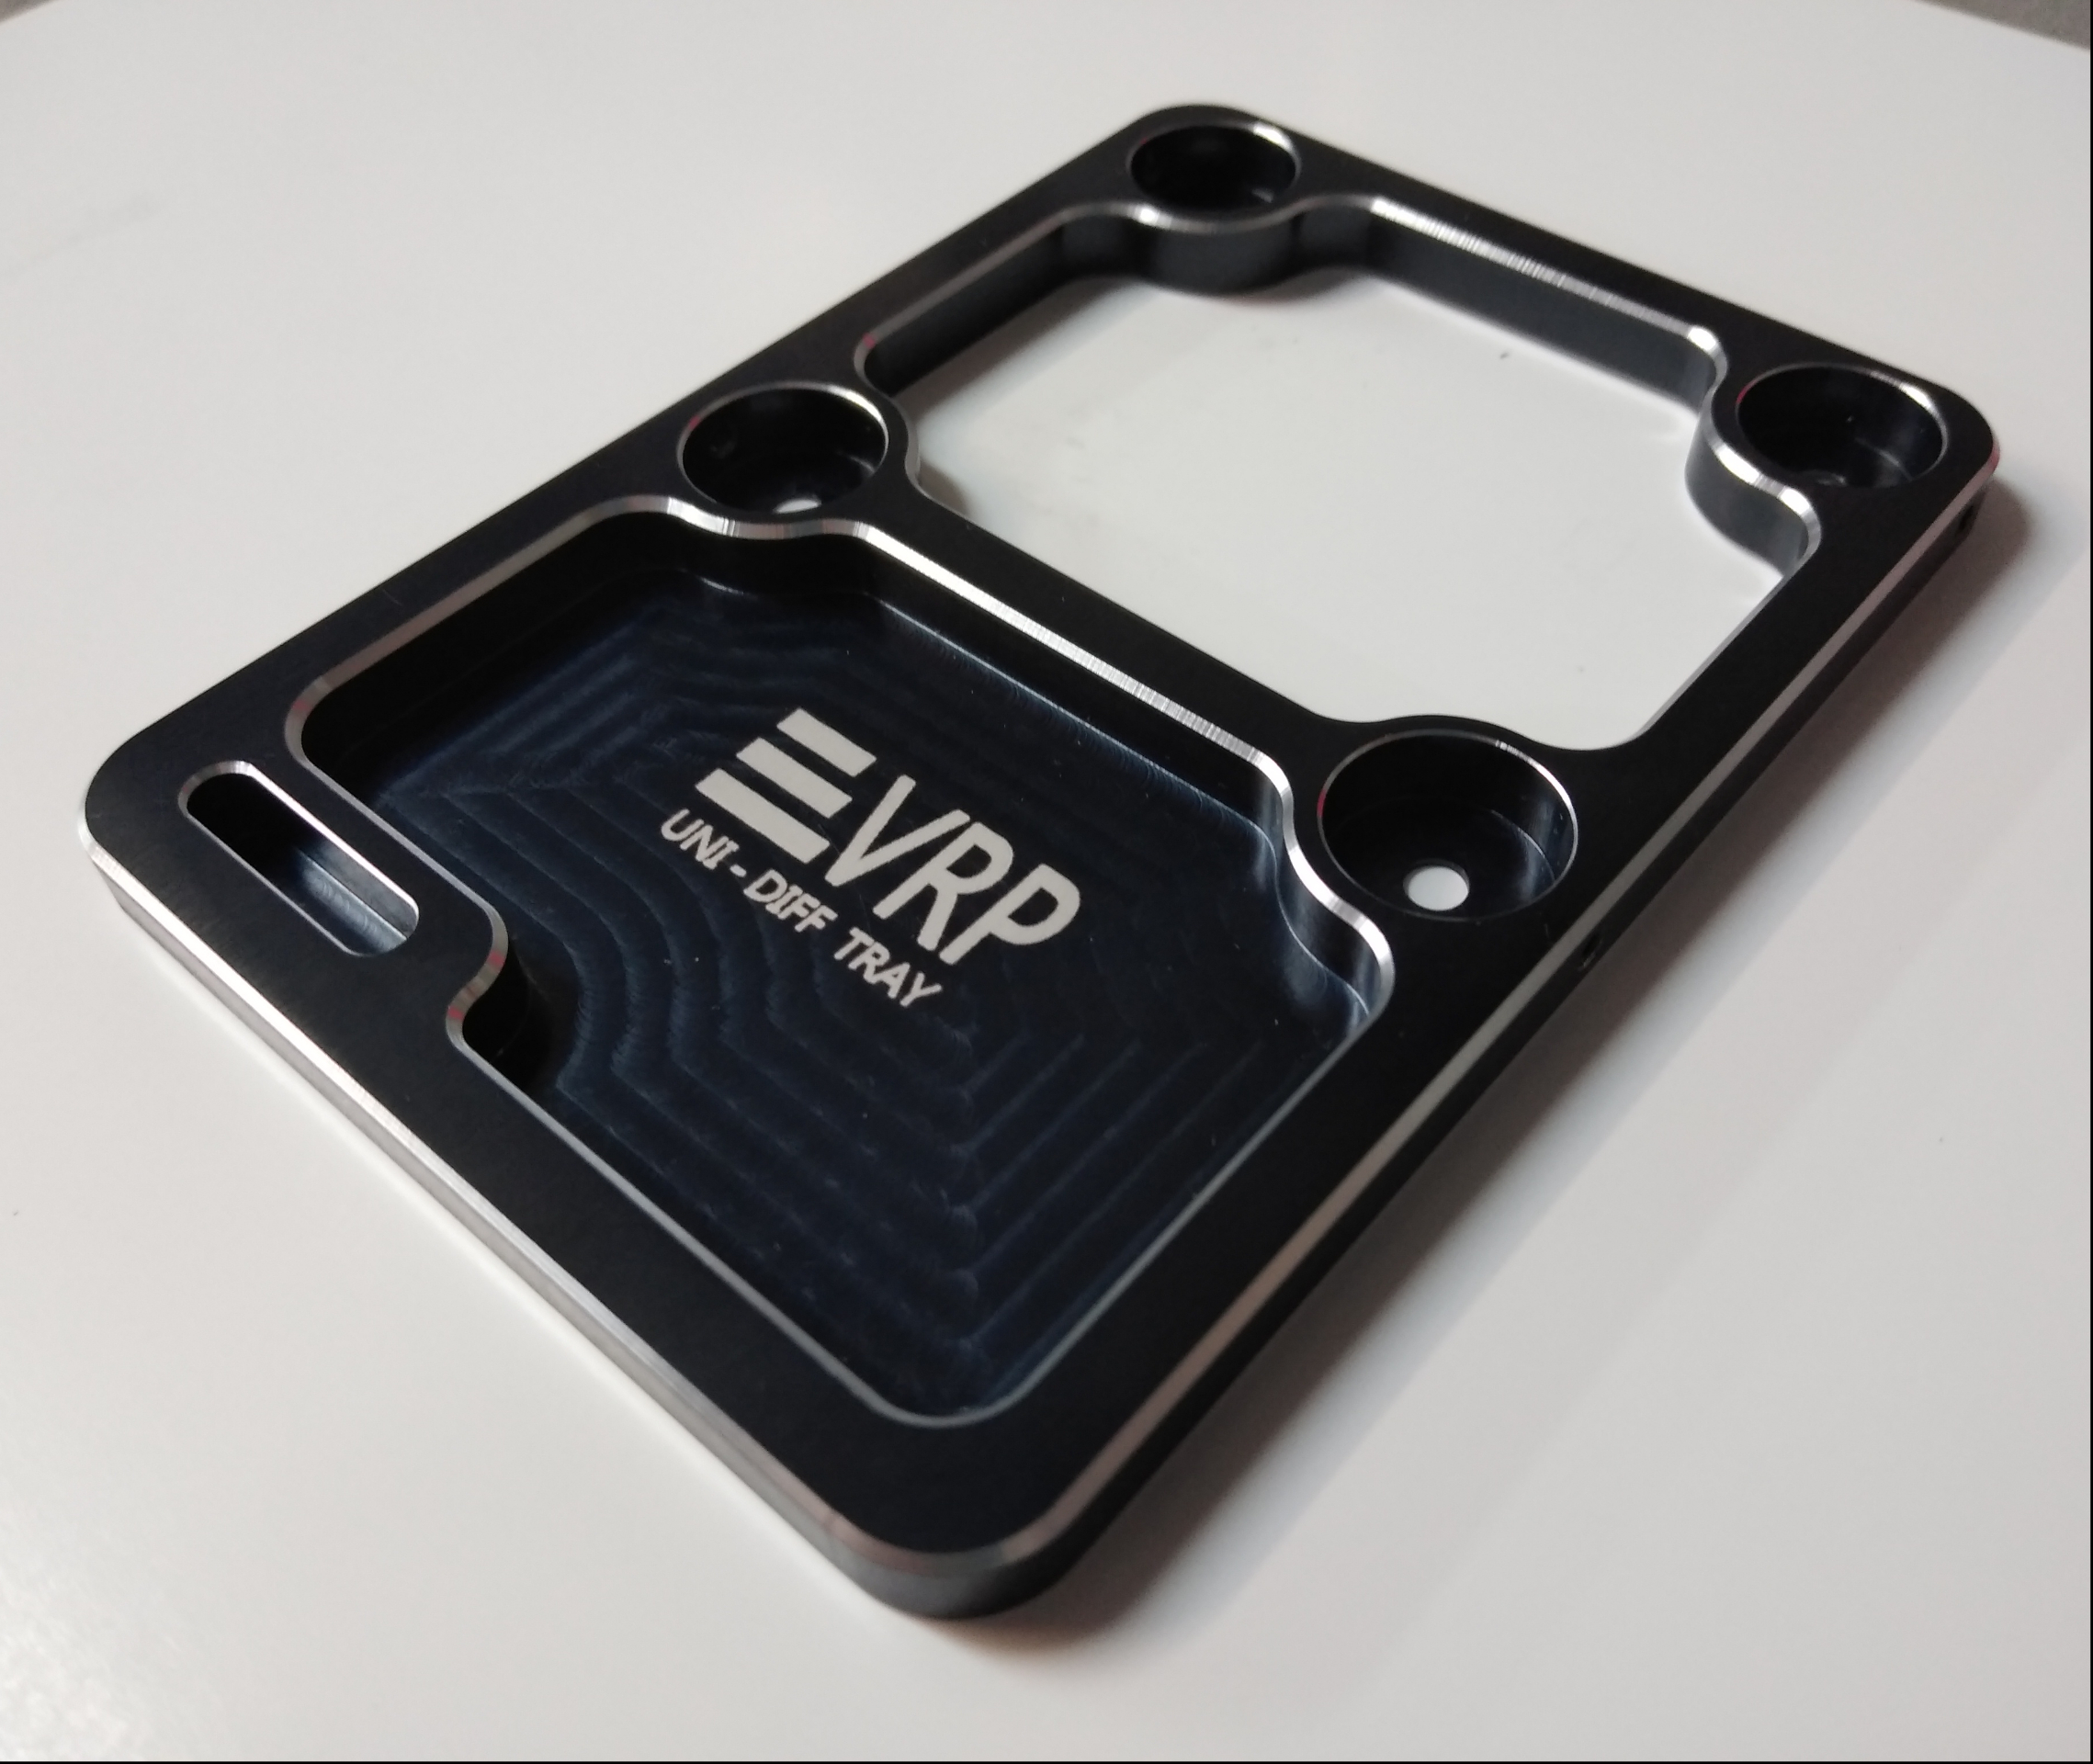 VRP 1/8 Universal Diff Service Tray (Black)